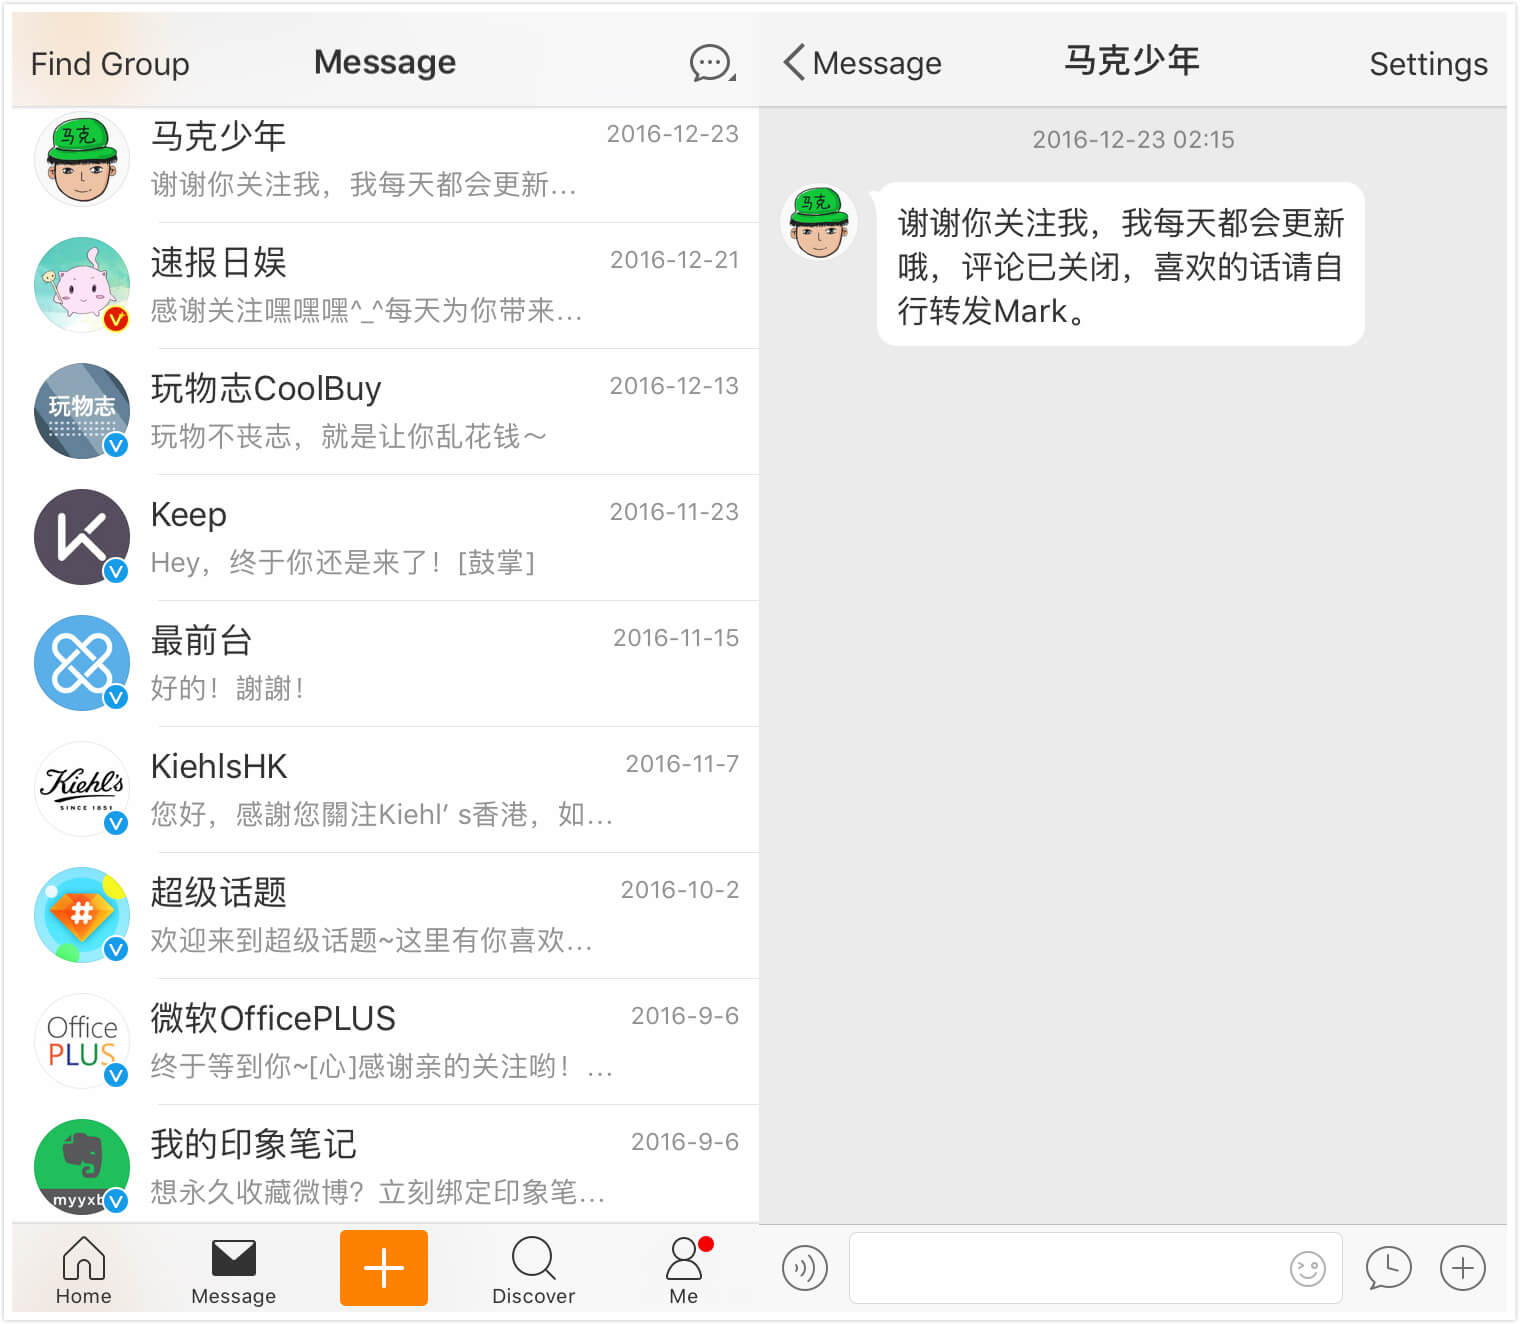 automated messages followers Weibo